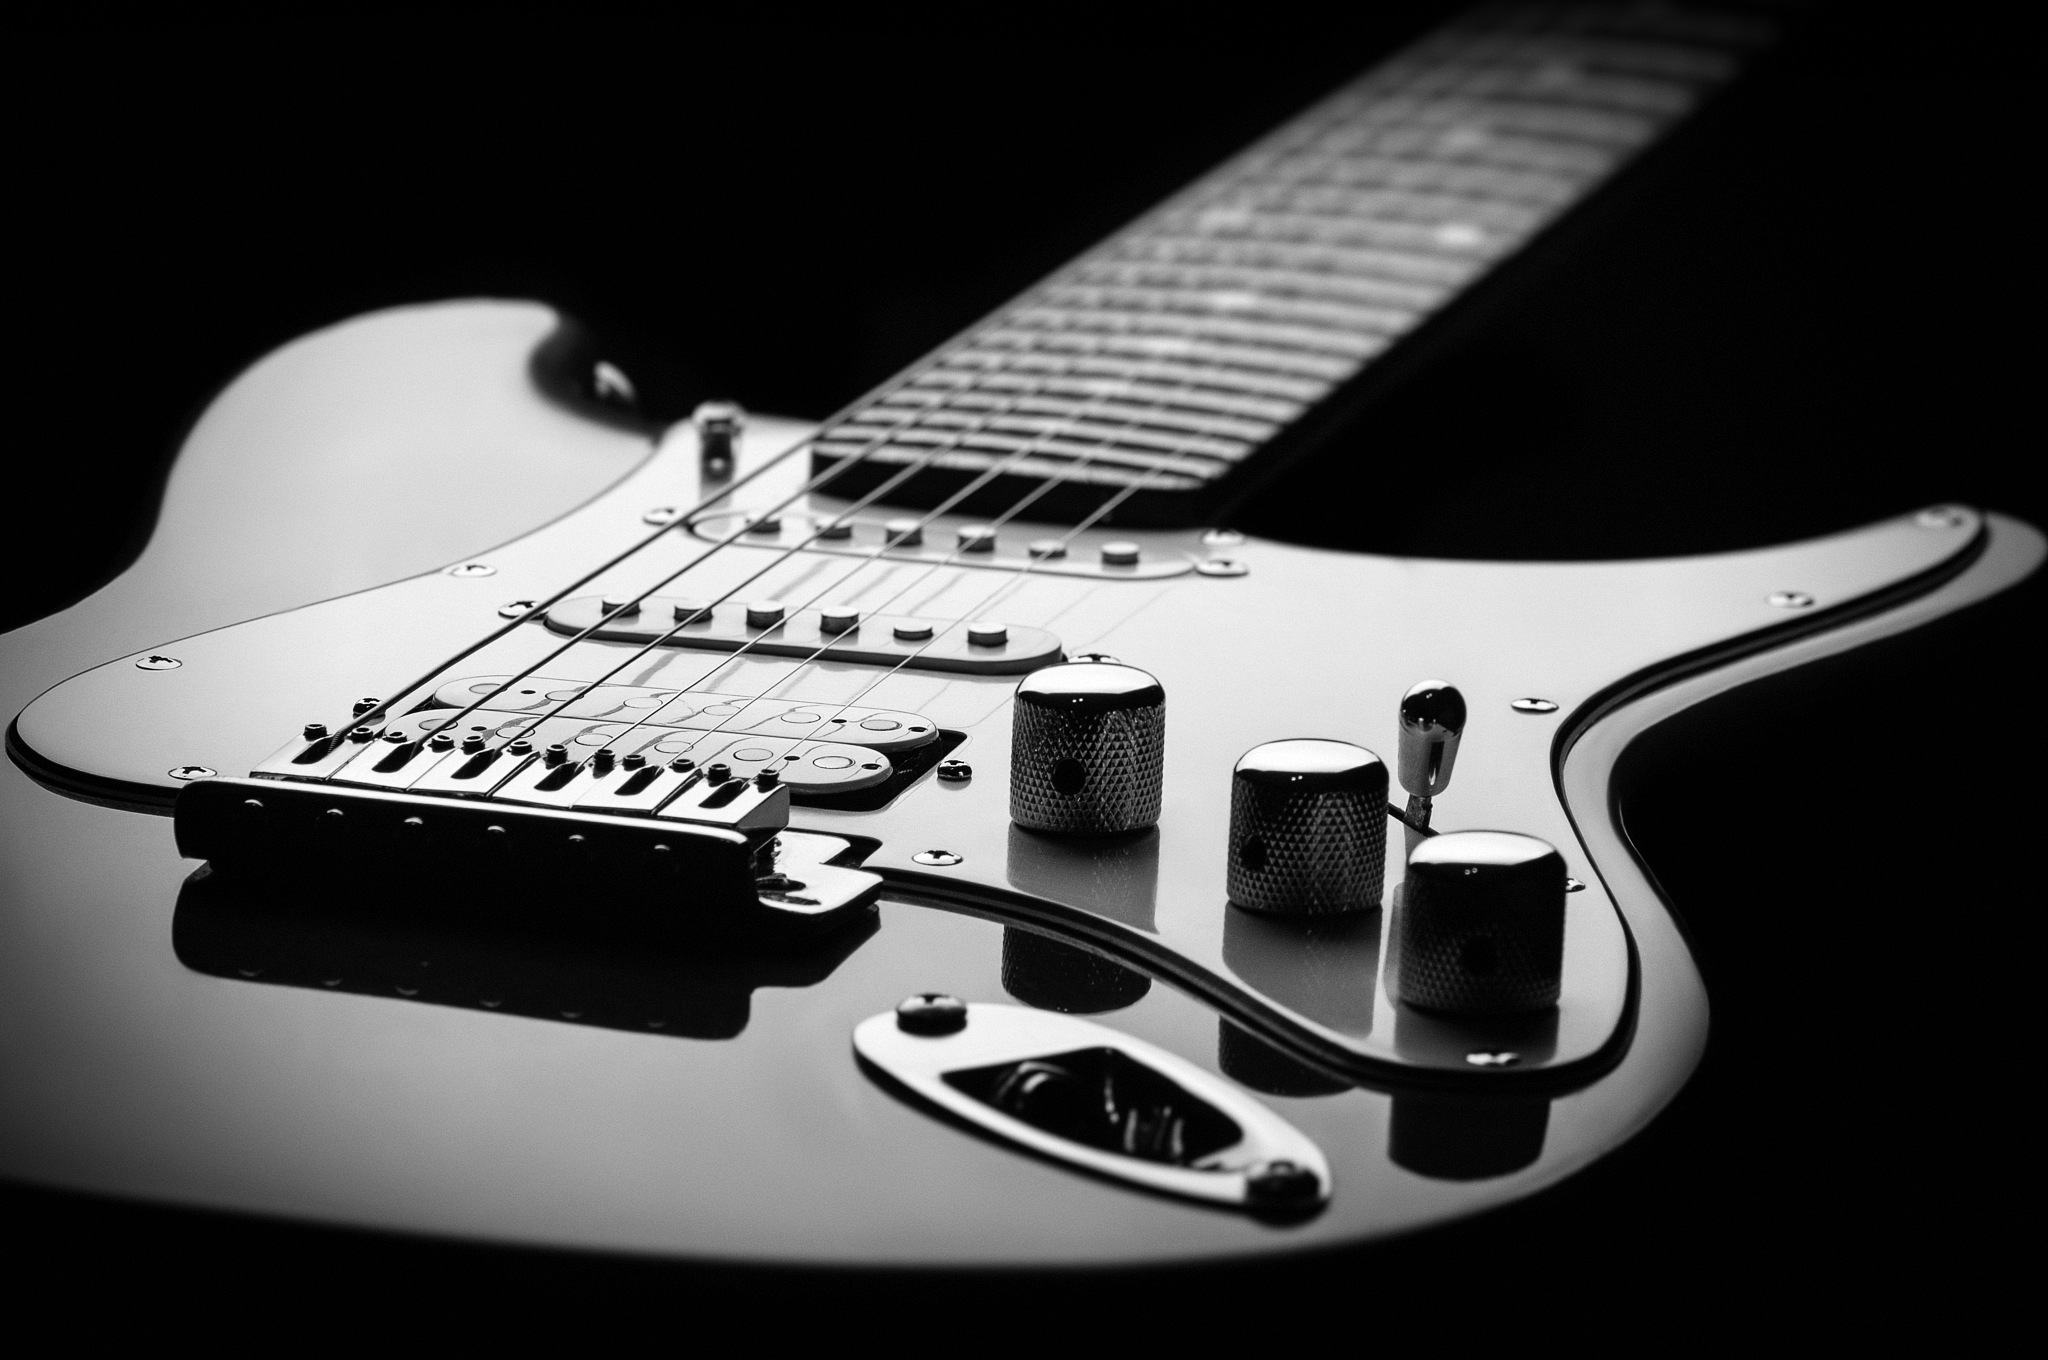 guitar by voronkinand